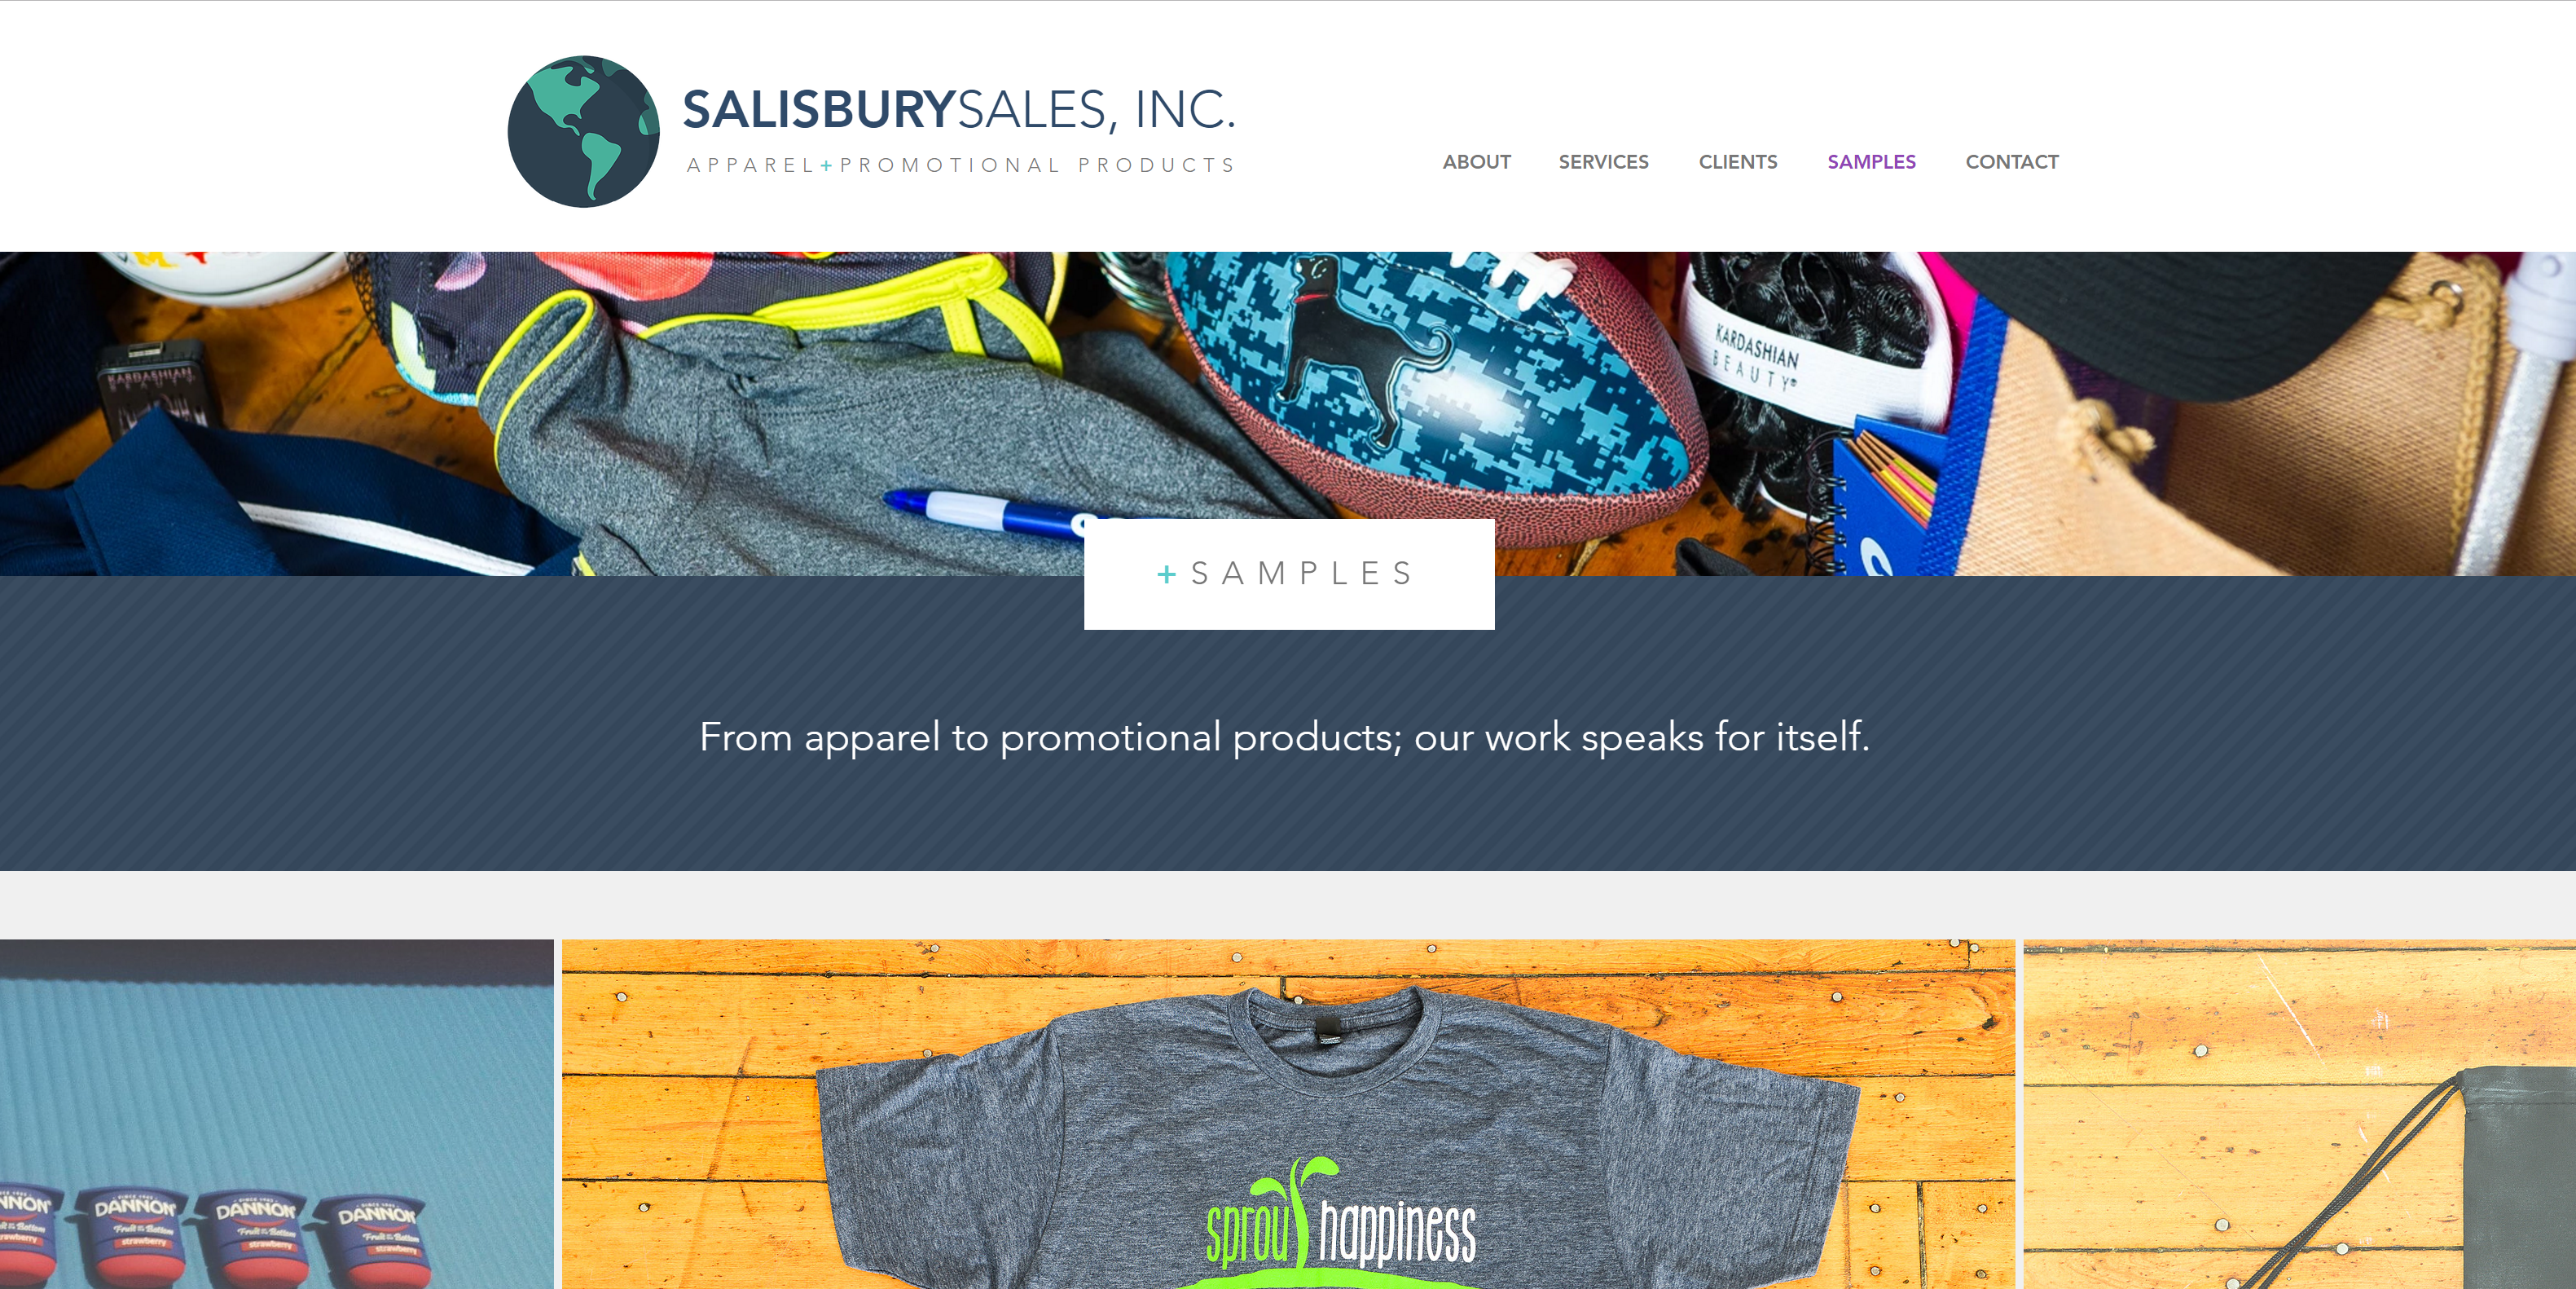 Sarah-Cas-Graphic-Design-Website-Design-Salisbury-Sales-03